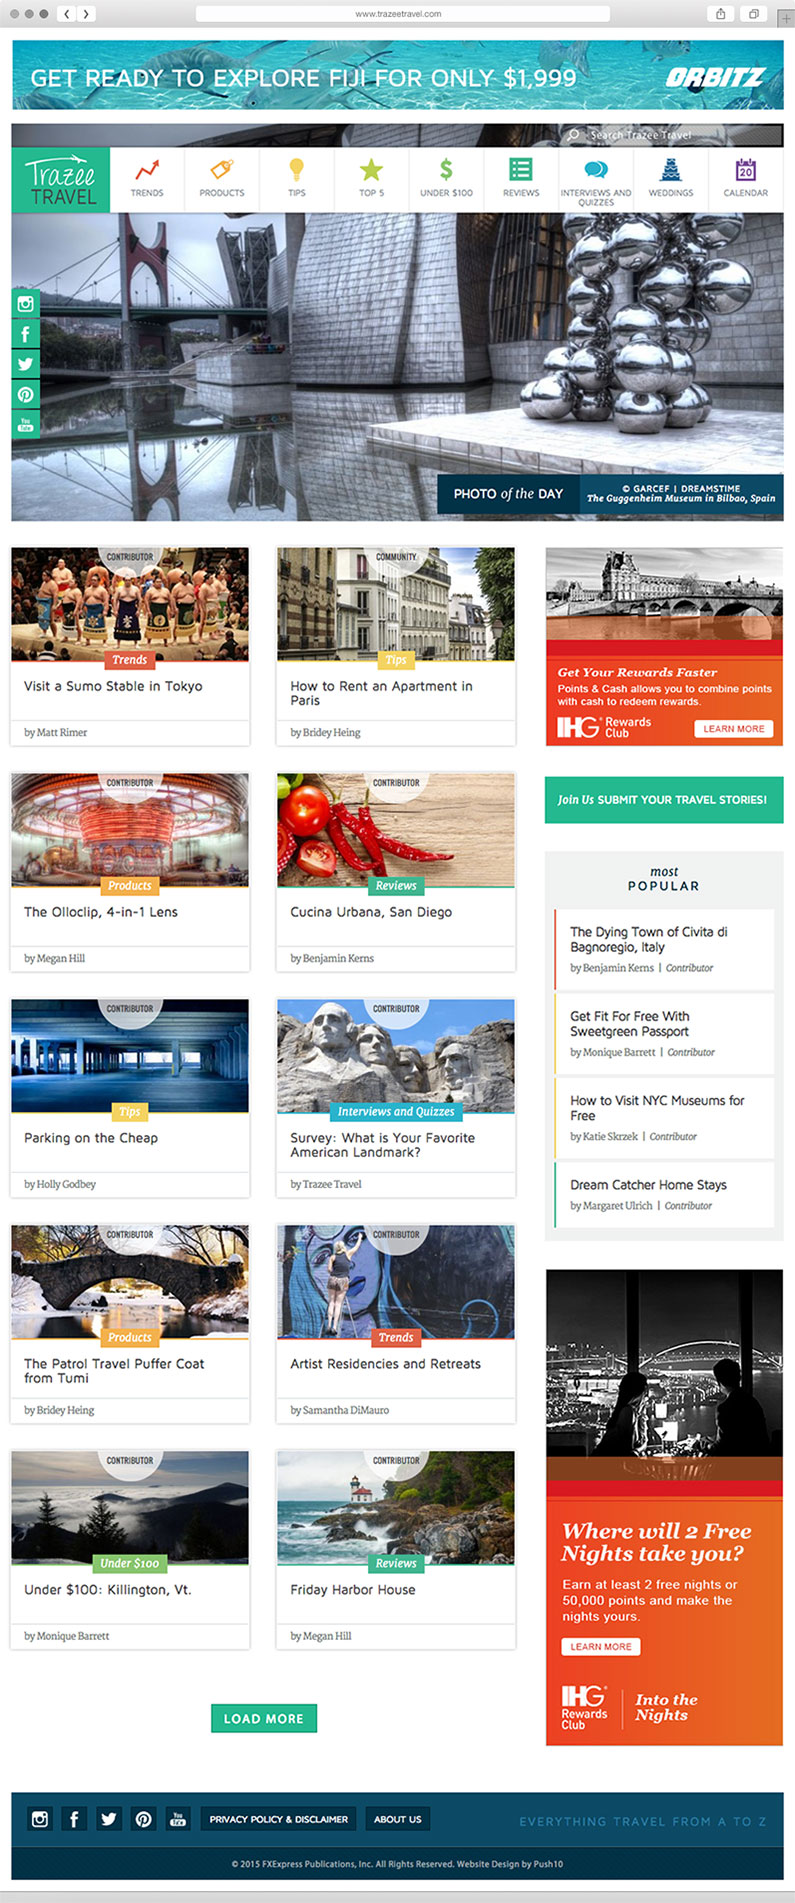 Custom designed post styles for blogs and articles for a trendy travel website by Push10.